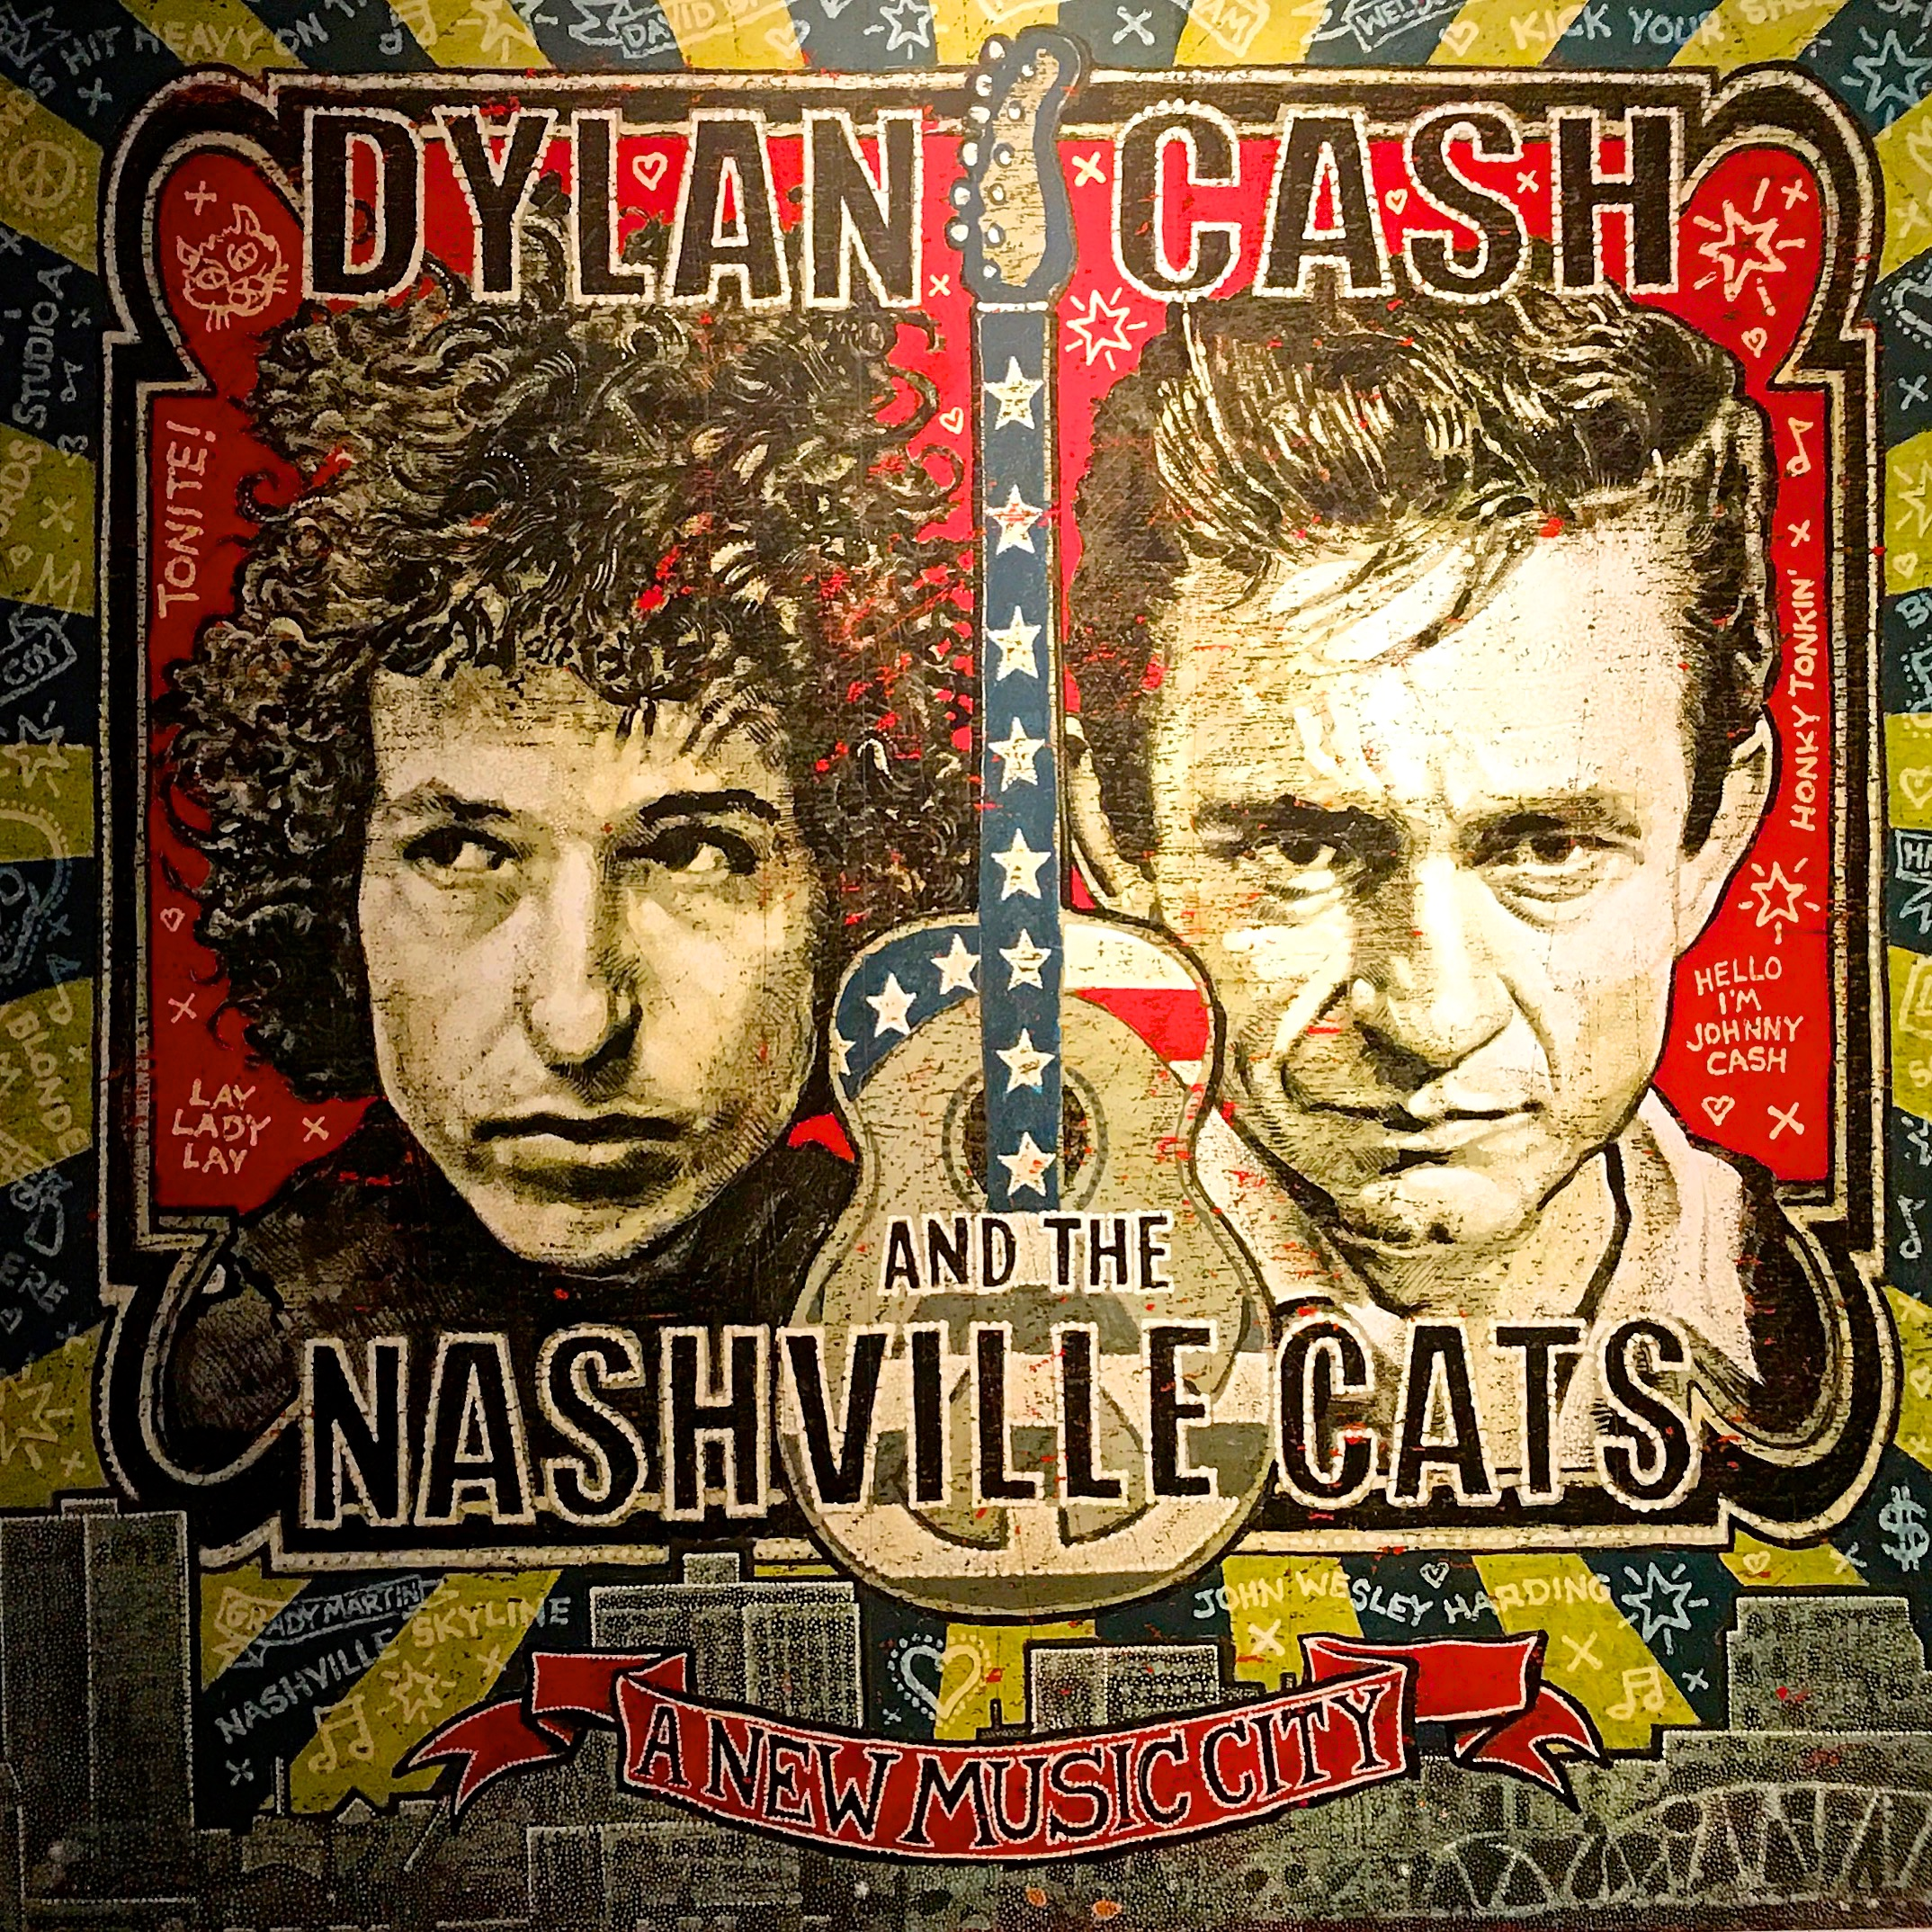 Dylan and Cash poster